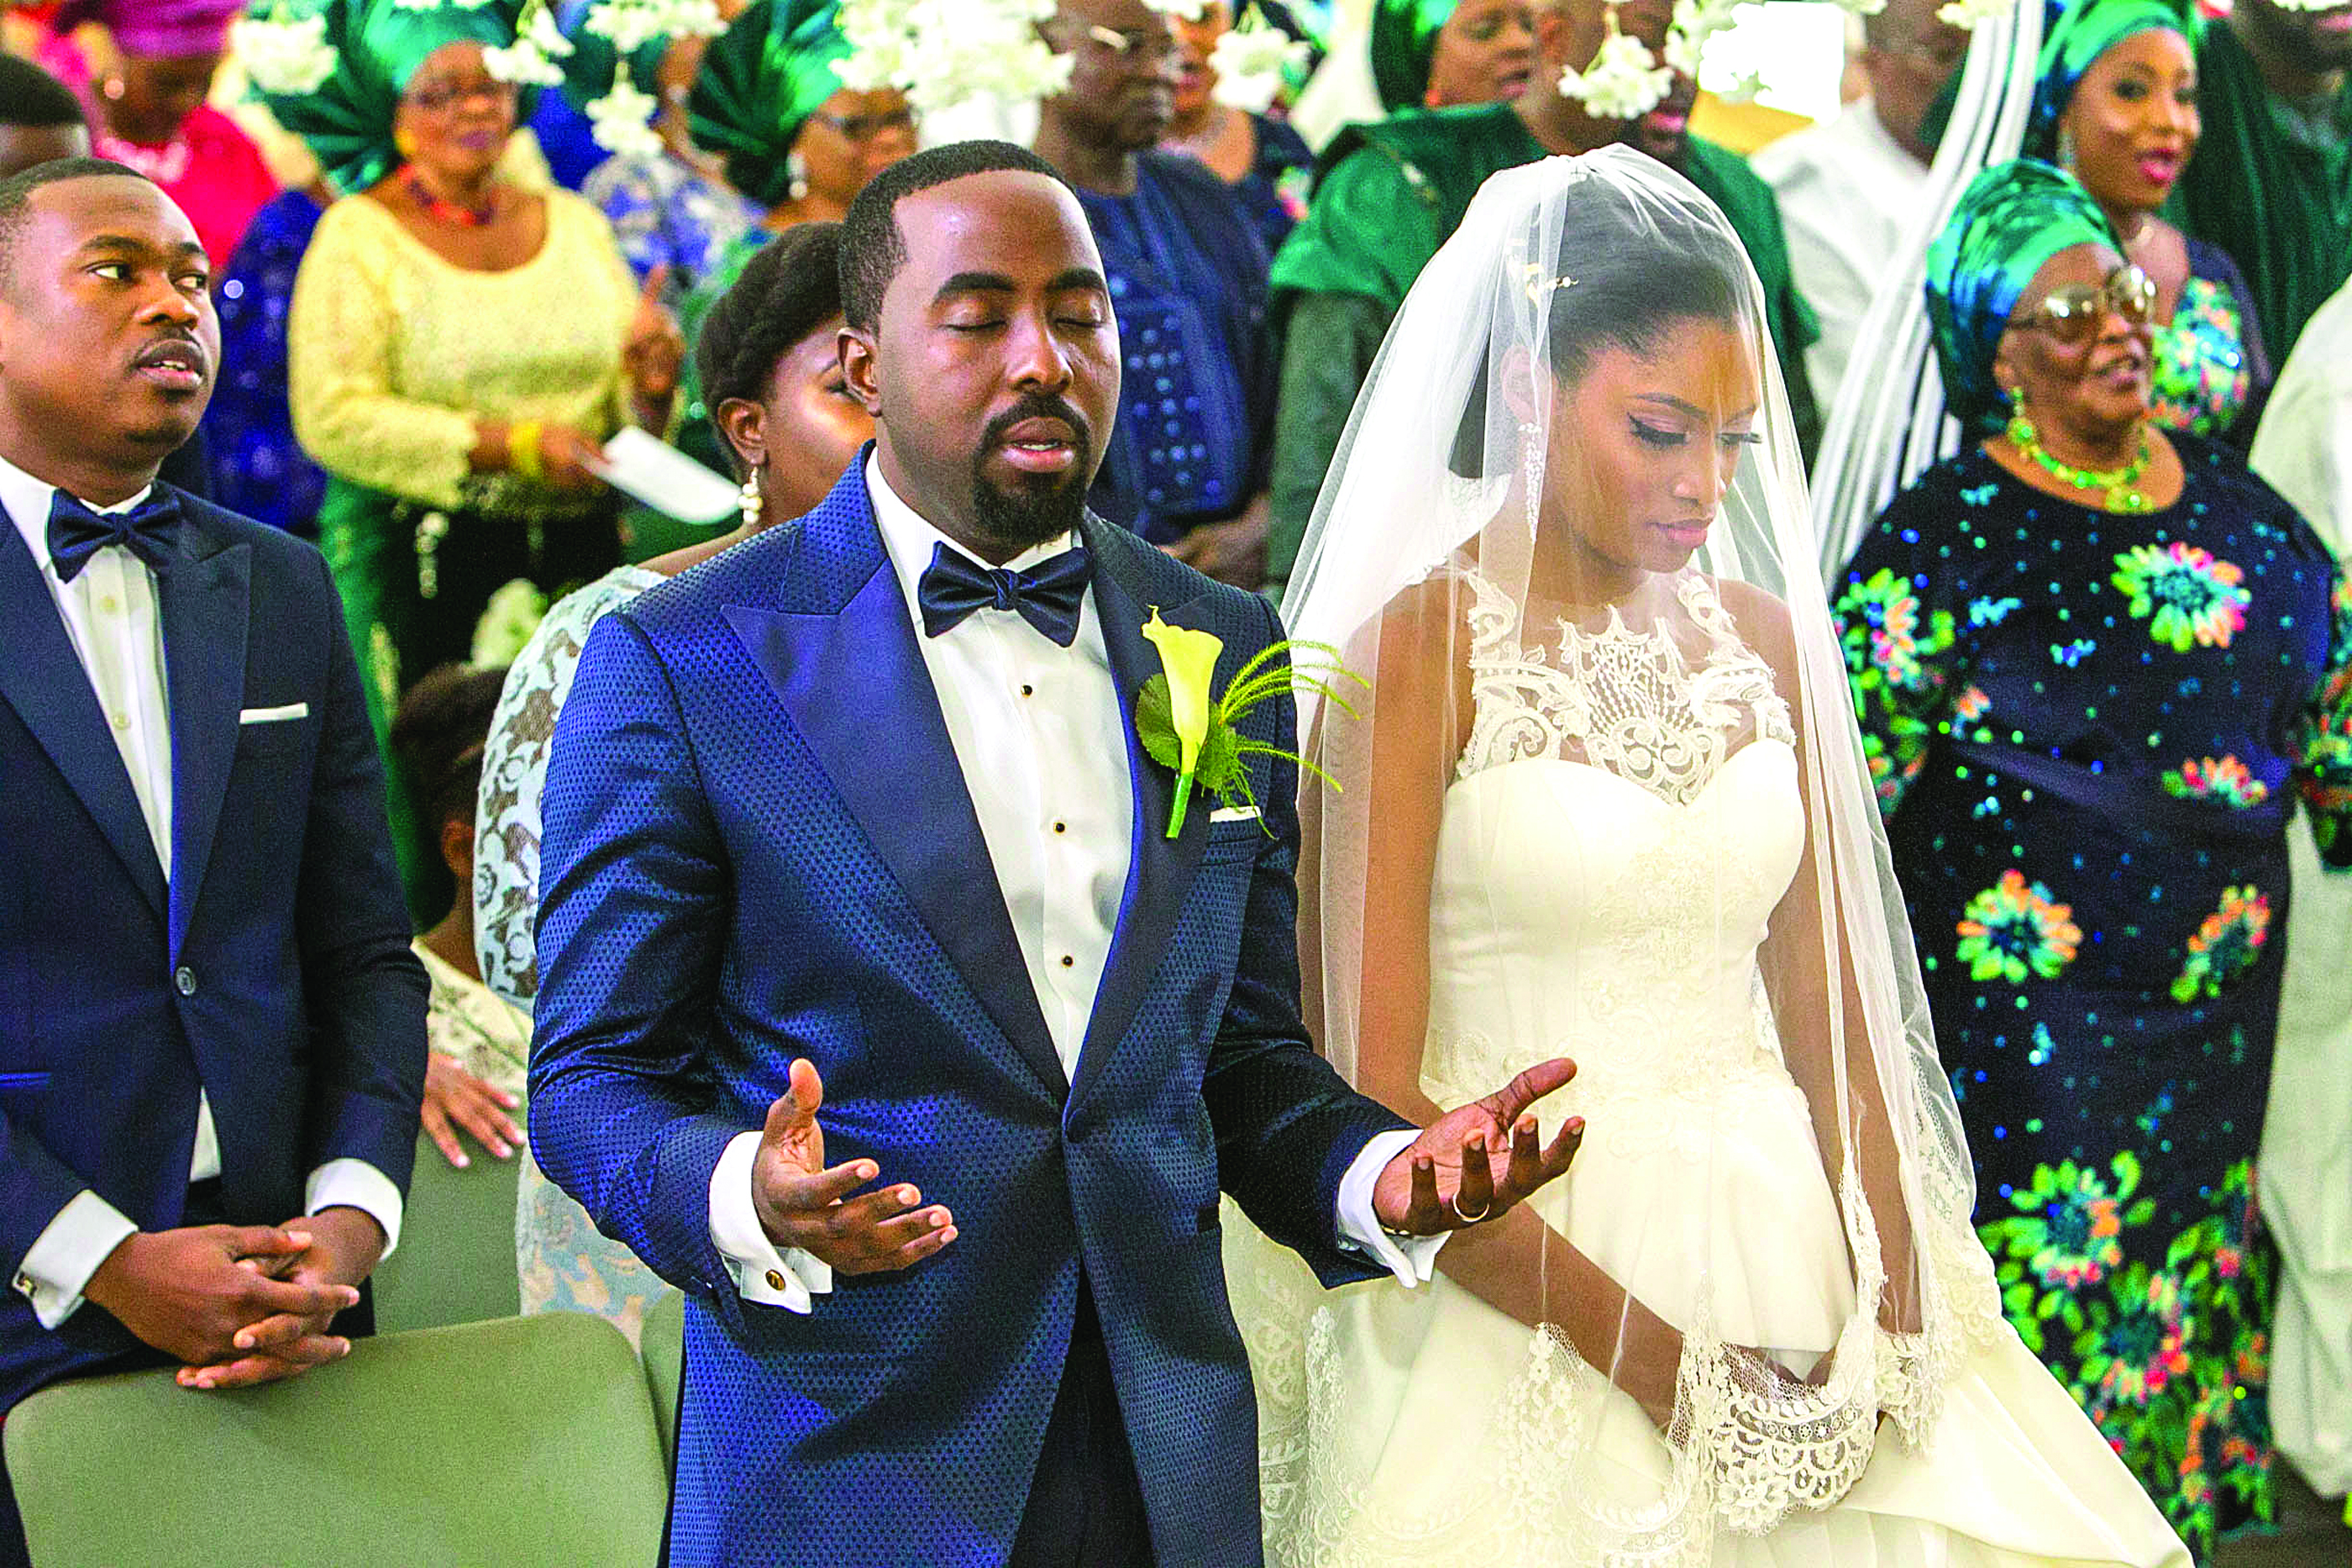 The Colourful Wedding Ceremony Of Xerona Duke And Derin Phillips